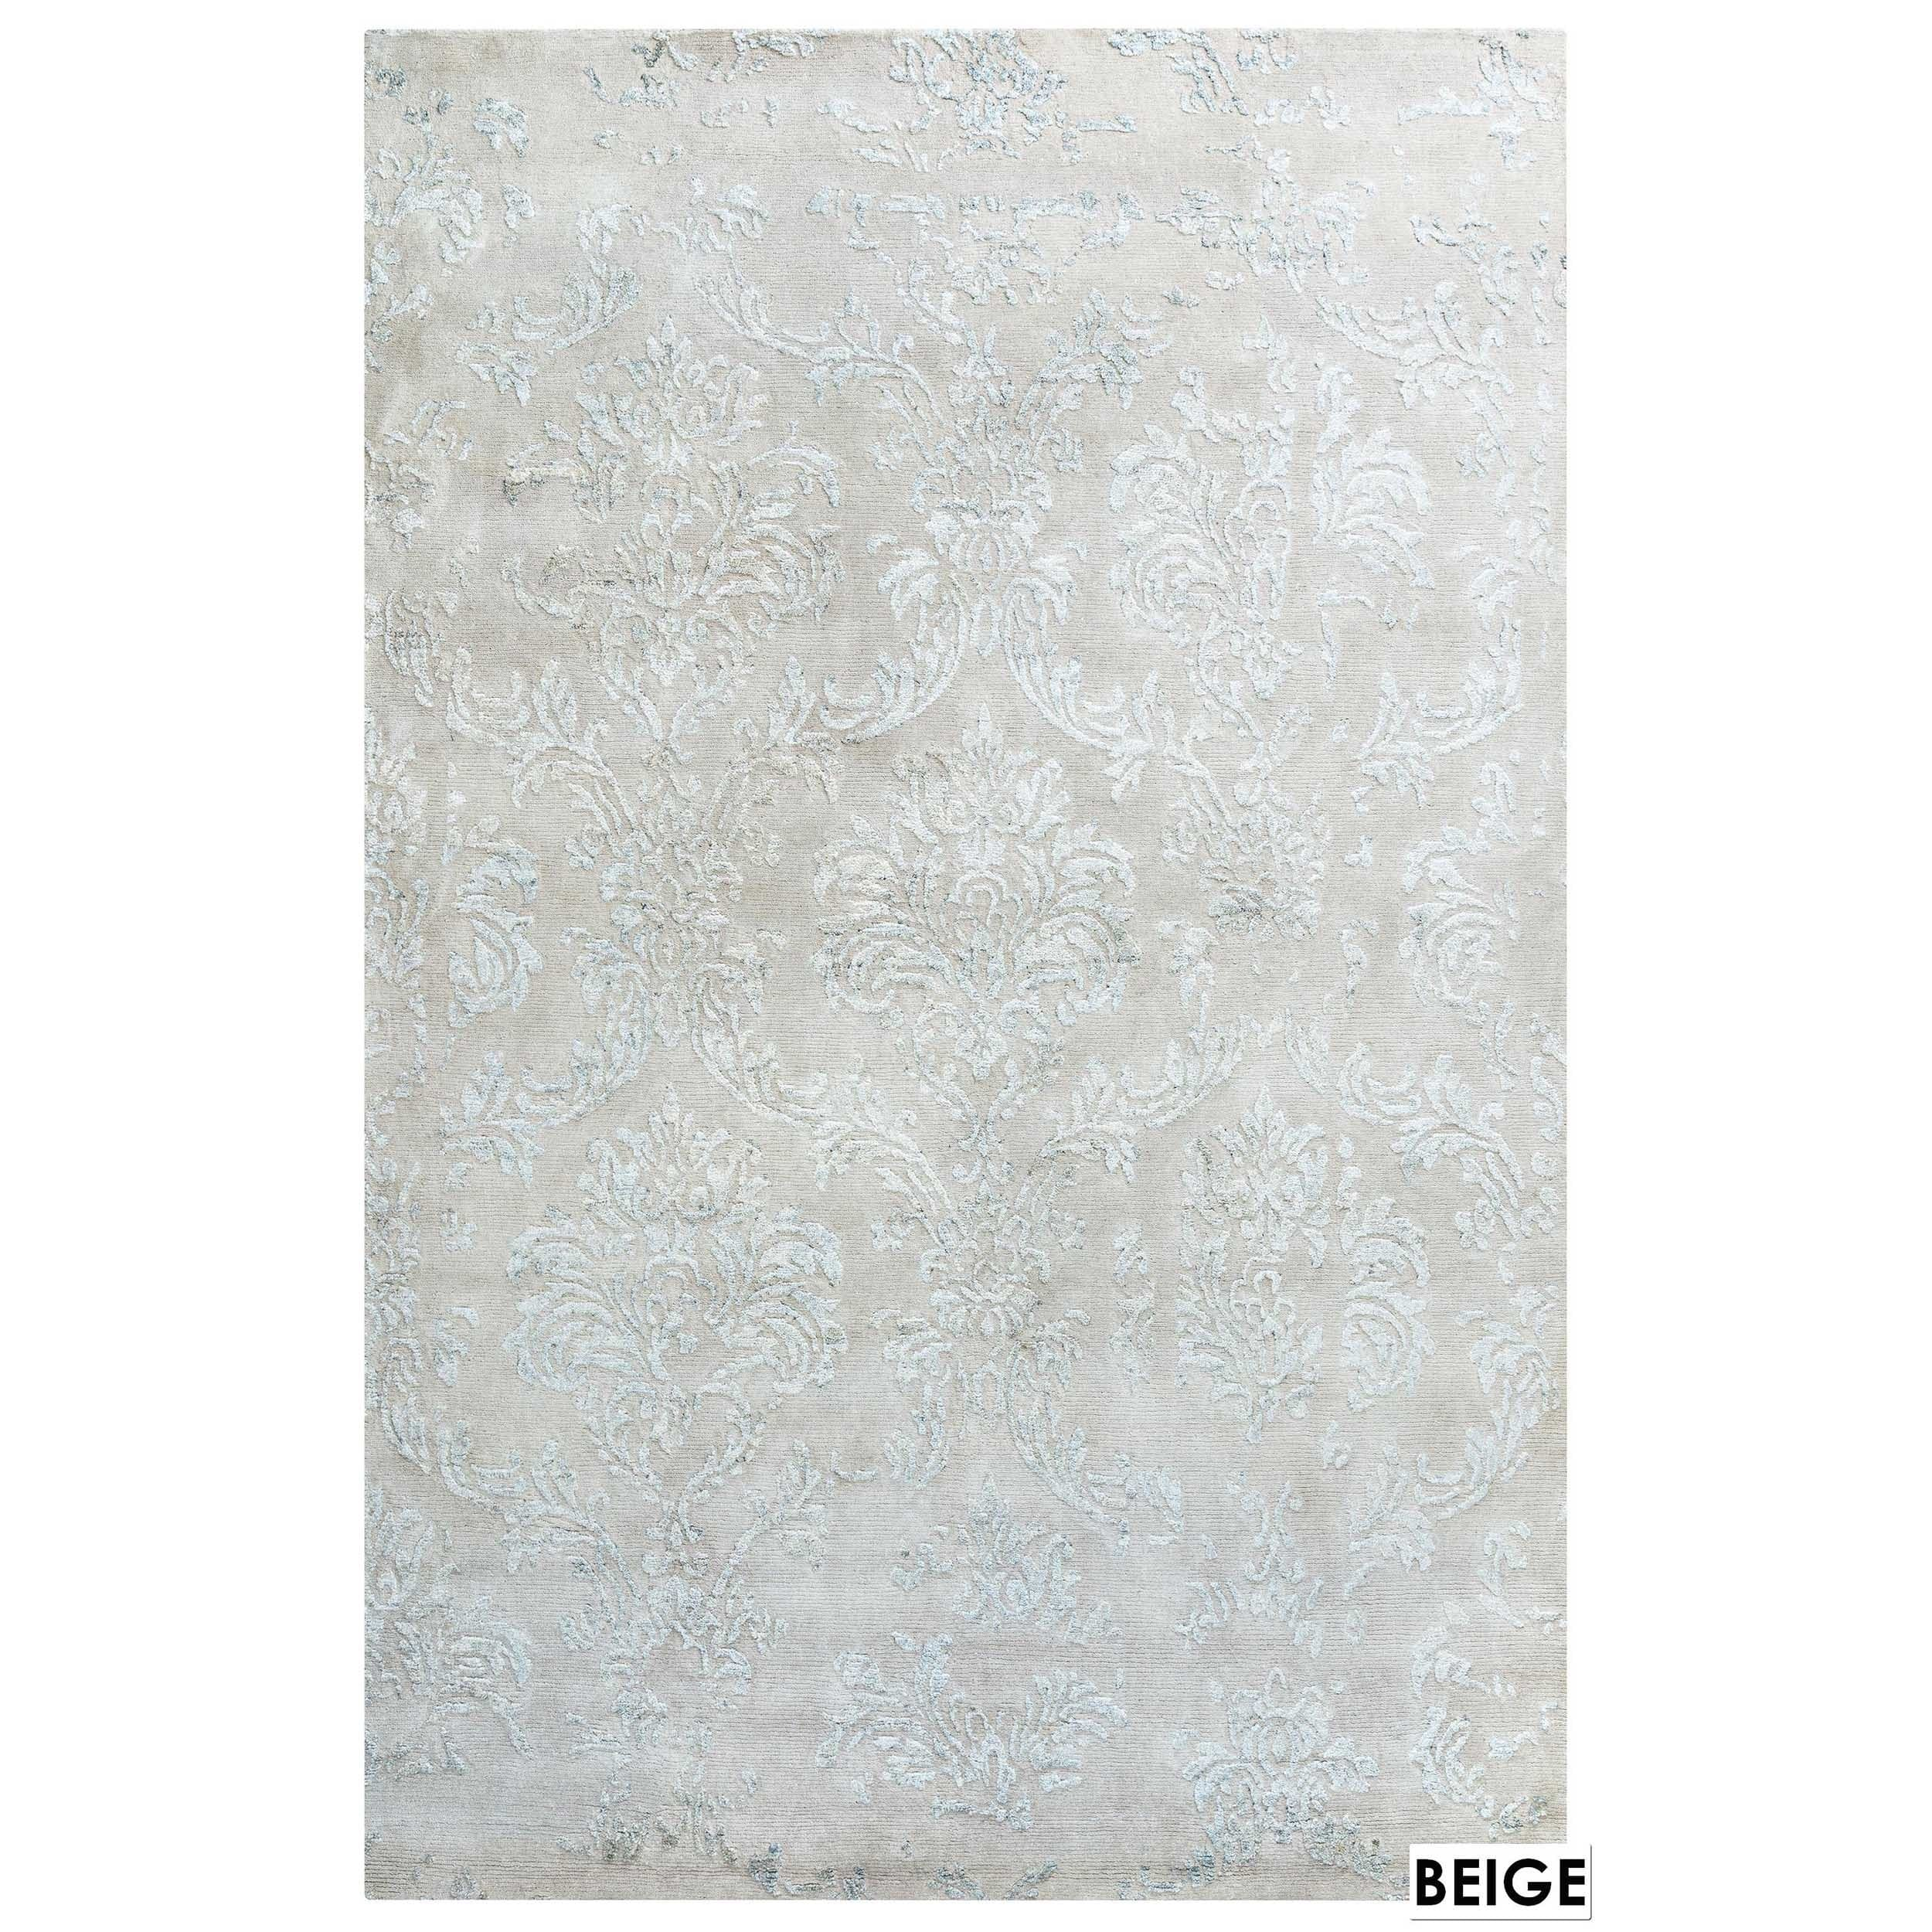 Rizzy Home Avant-Garde Collection Area Rug (56 x 86) (56 x 86 - ivory)